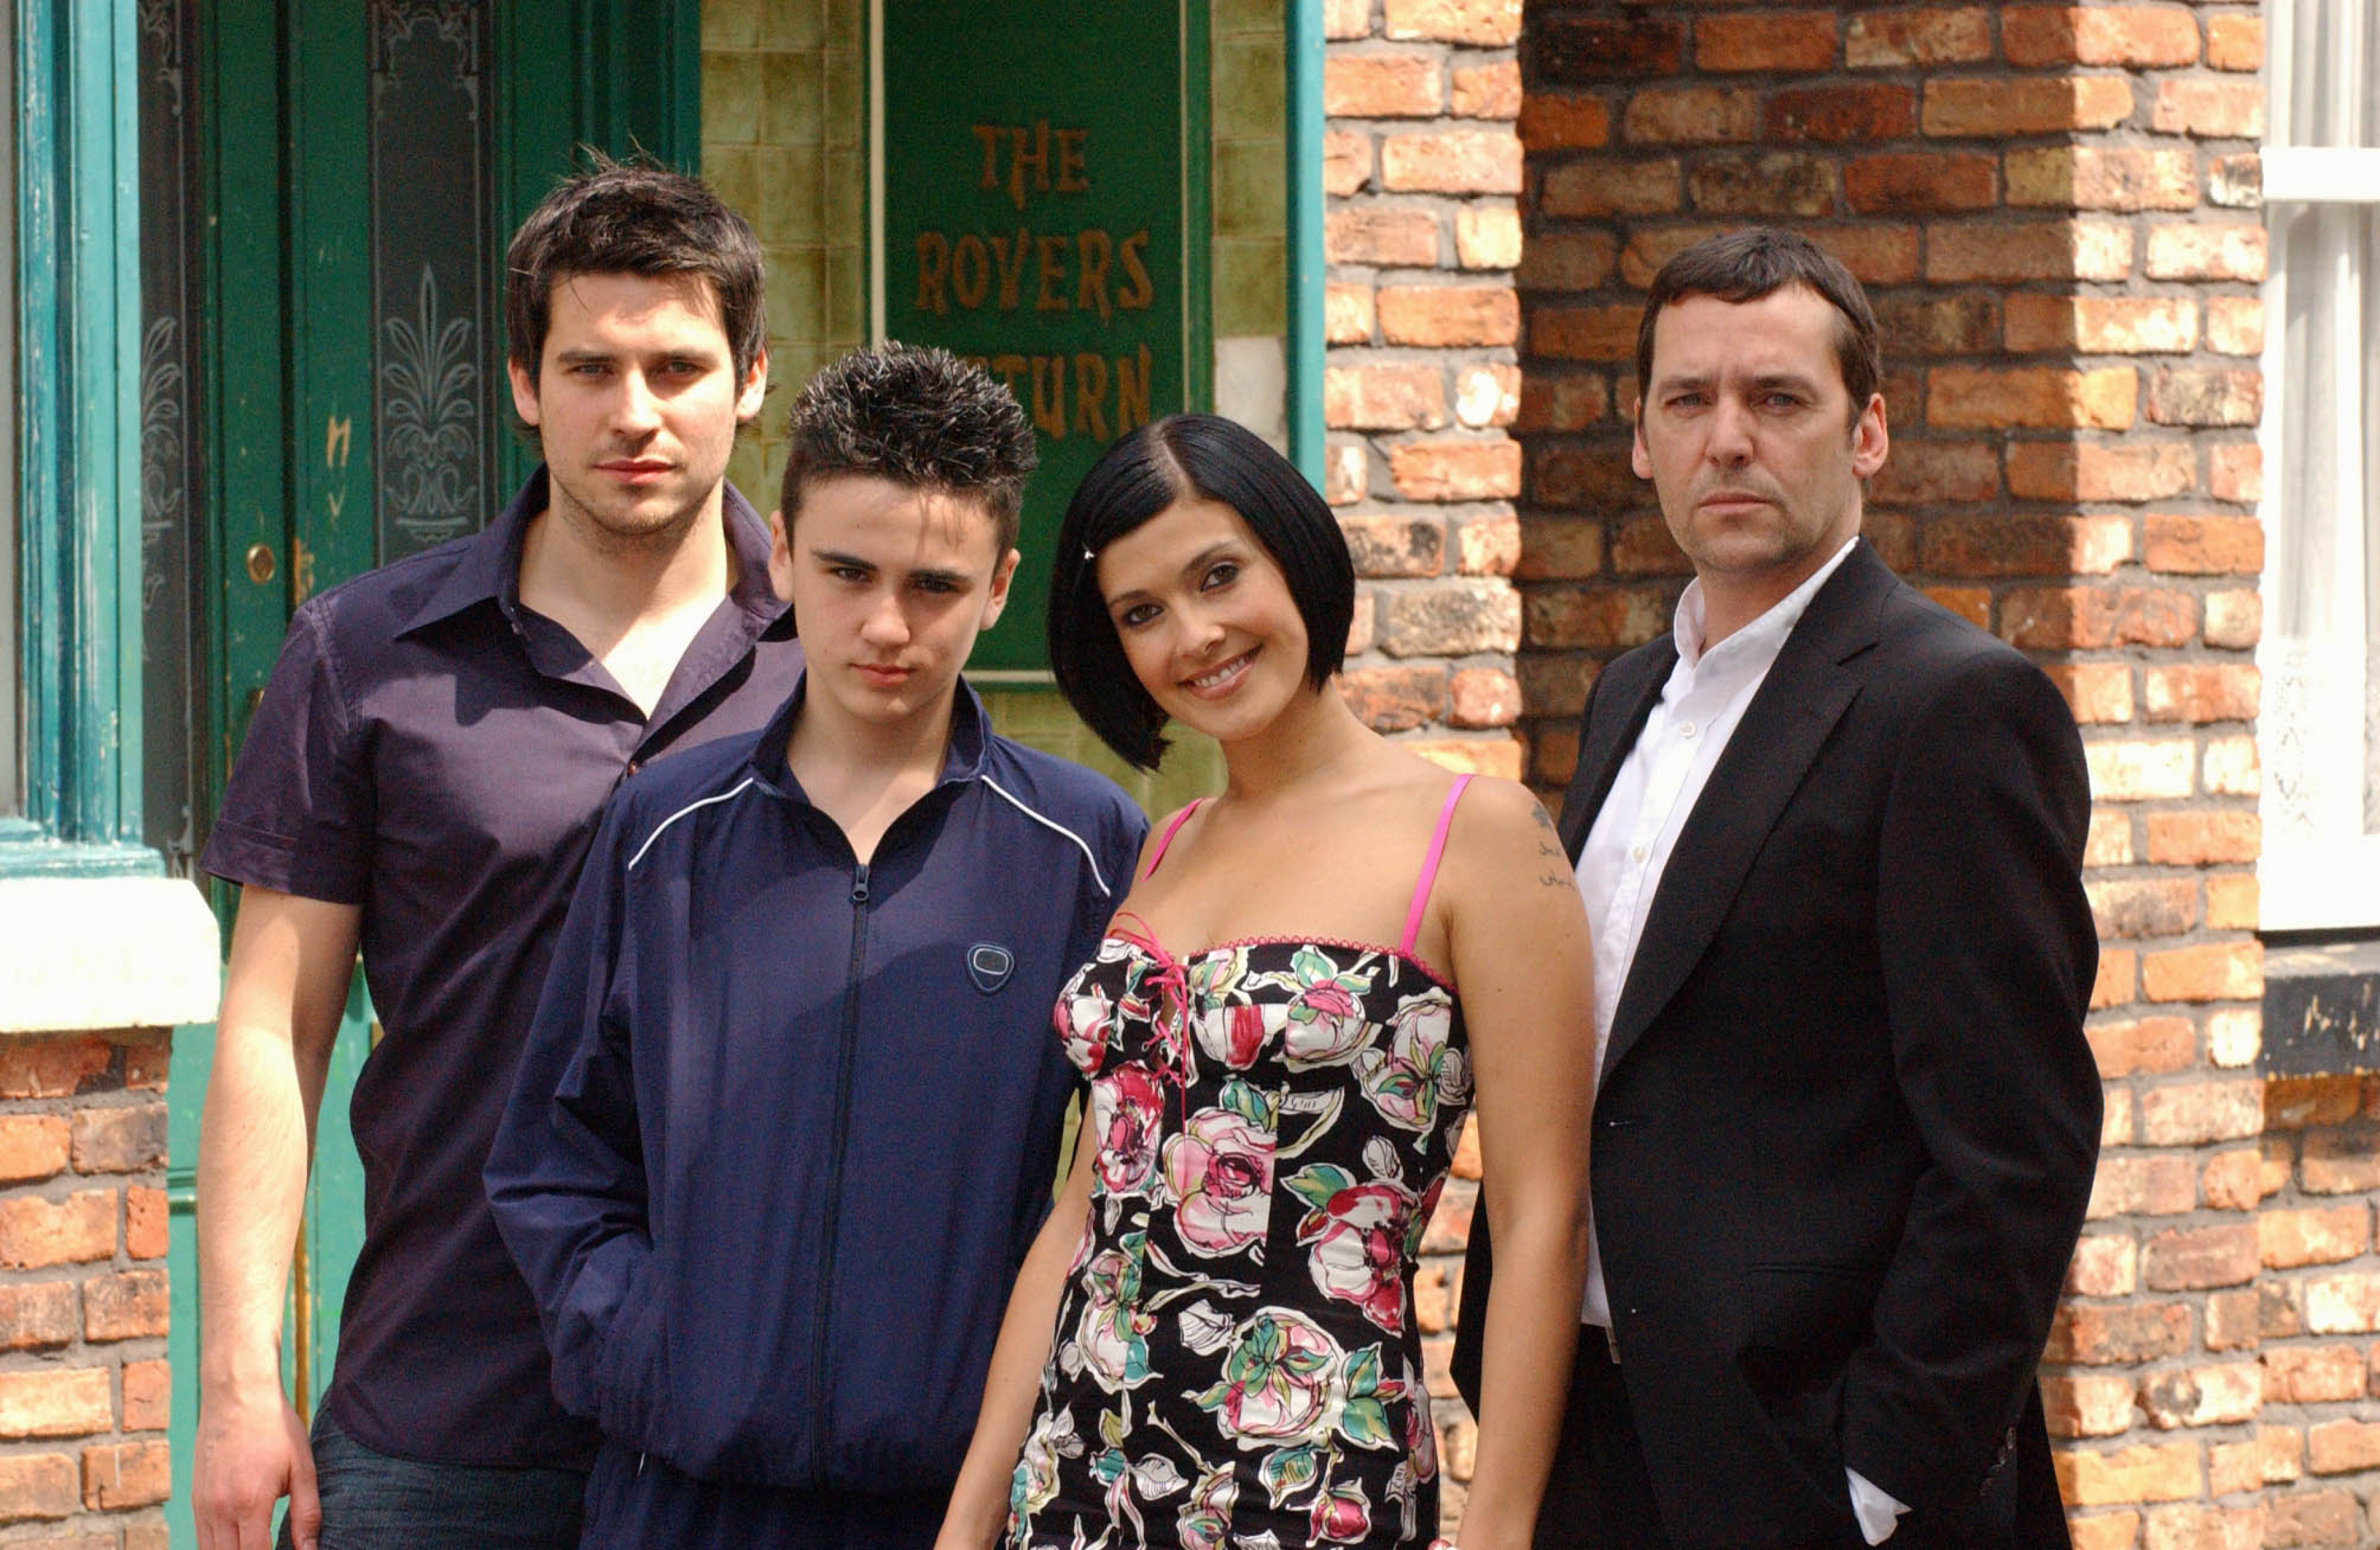 Editorial use only. Exclusive - Premium Rates Apply. Call your Account Manager for pricing. Mandatory Credit: Photo by ITV/REX/Shutterstock (801732lb) 'Coronation Street' TV - 2006 - The Connor Family Liam Connor (Rob James-Collier) Ryan Connor (Ben Thompson) Michelle Connor (Kym Ryder) Paul Connor (Sean Gallagher-Jacket). ITV ARCHIVE